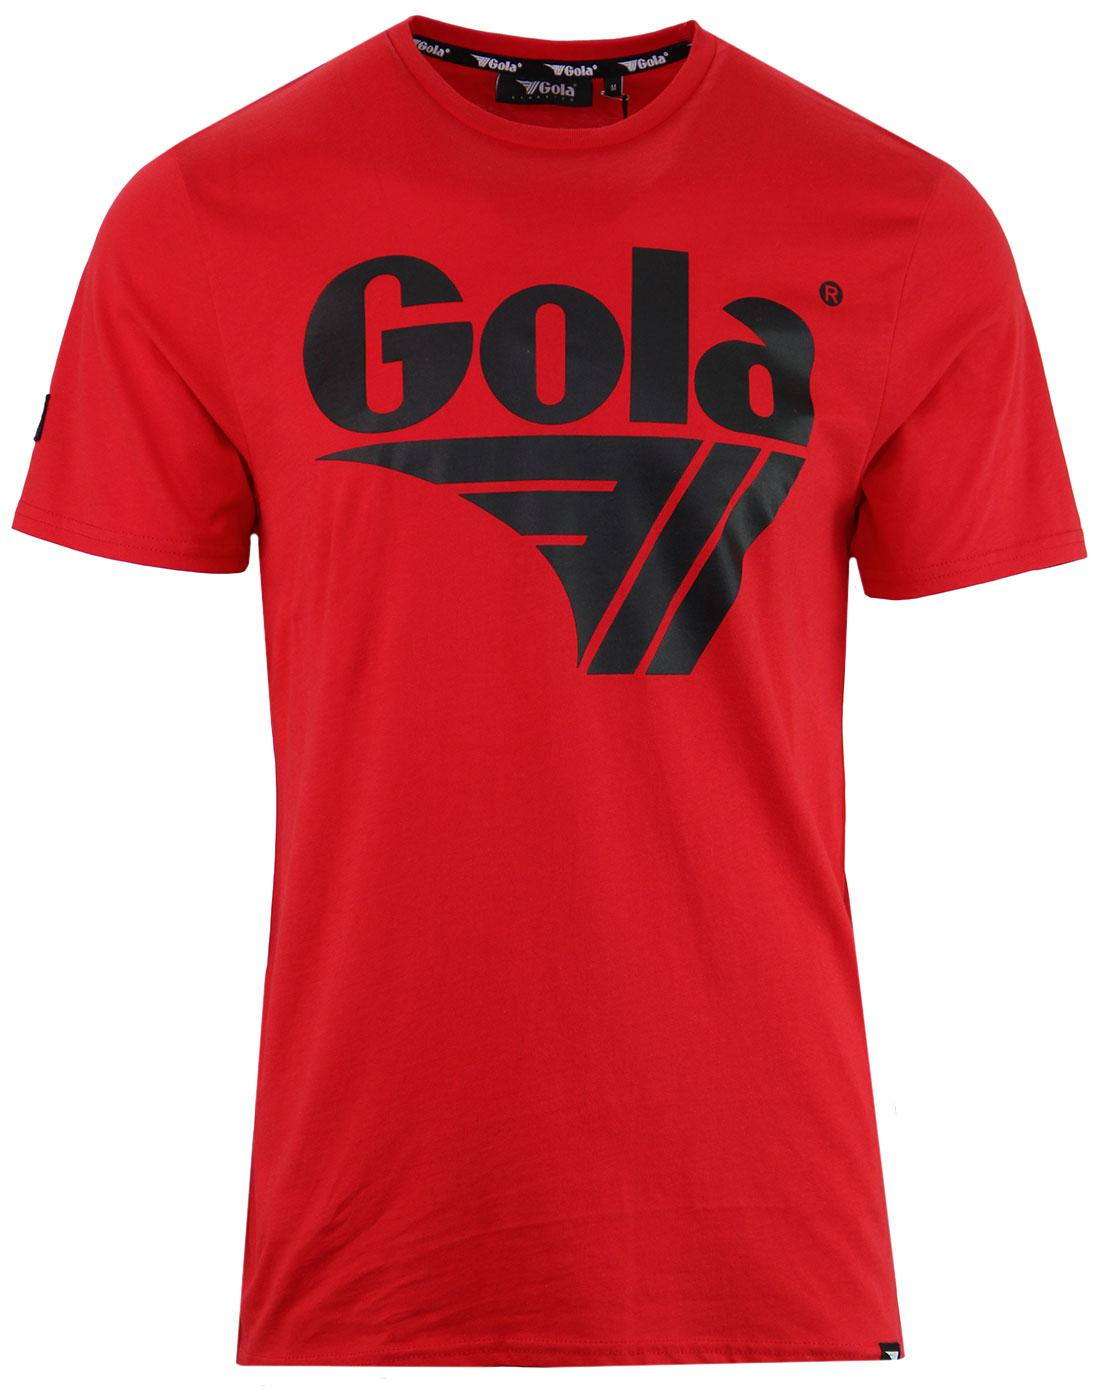 Dunne GOLA CLASSICS 1980's Chest Logo Tee - Red